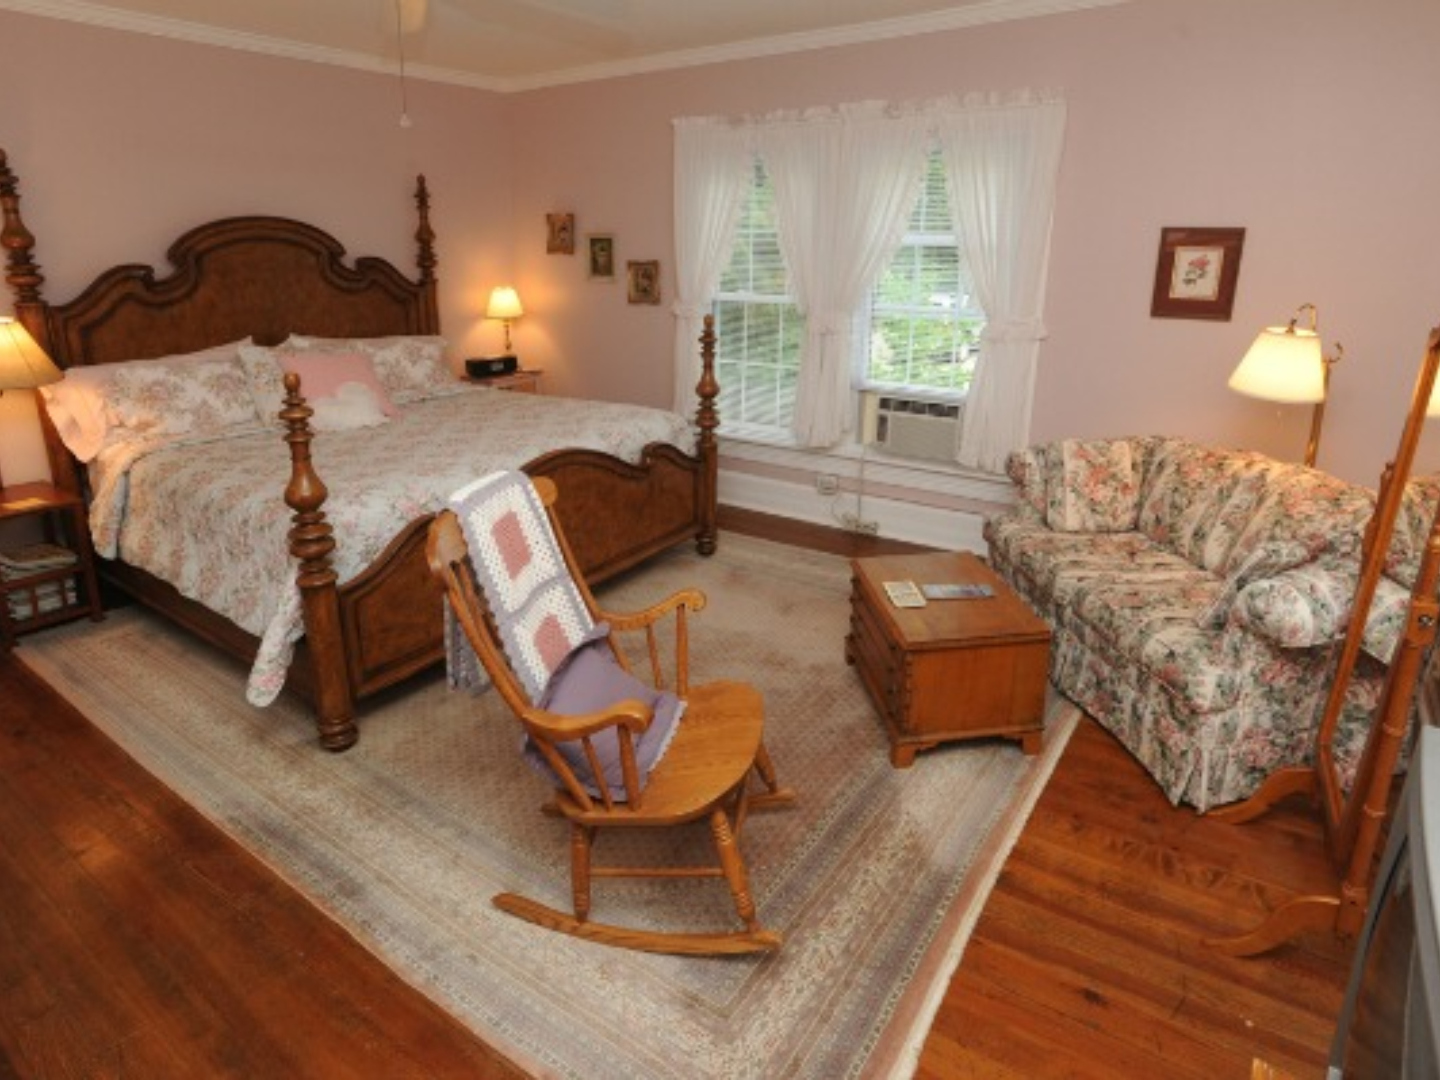 A living room filled with furniture and a fire place at Dry Ridge Inn Bed and Breakfast.